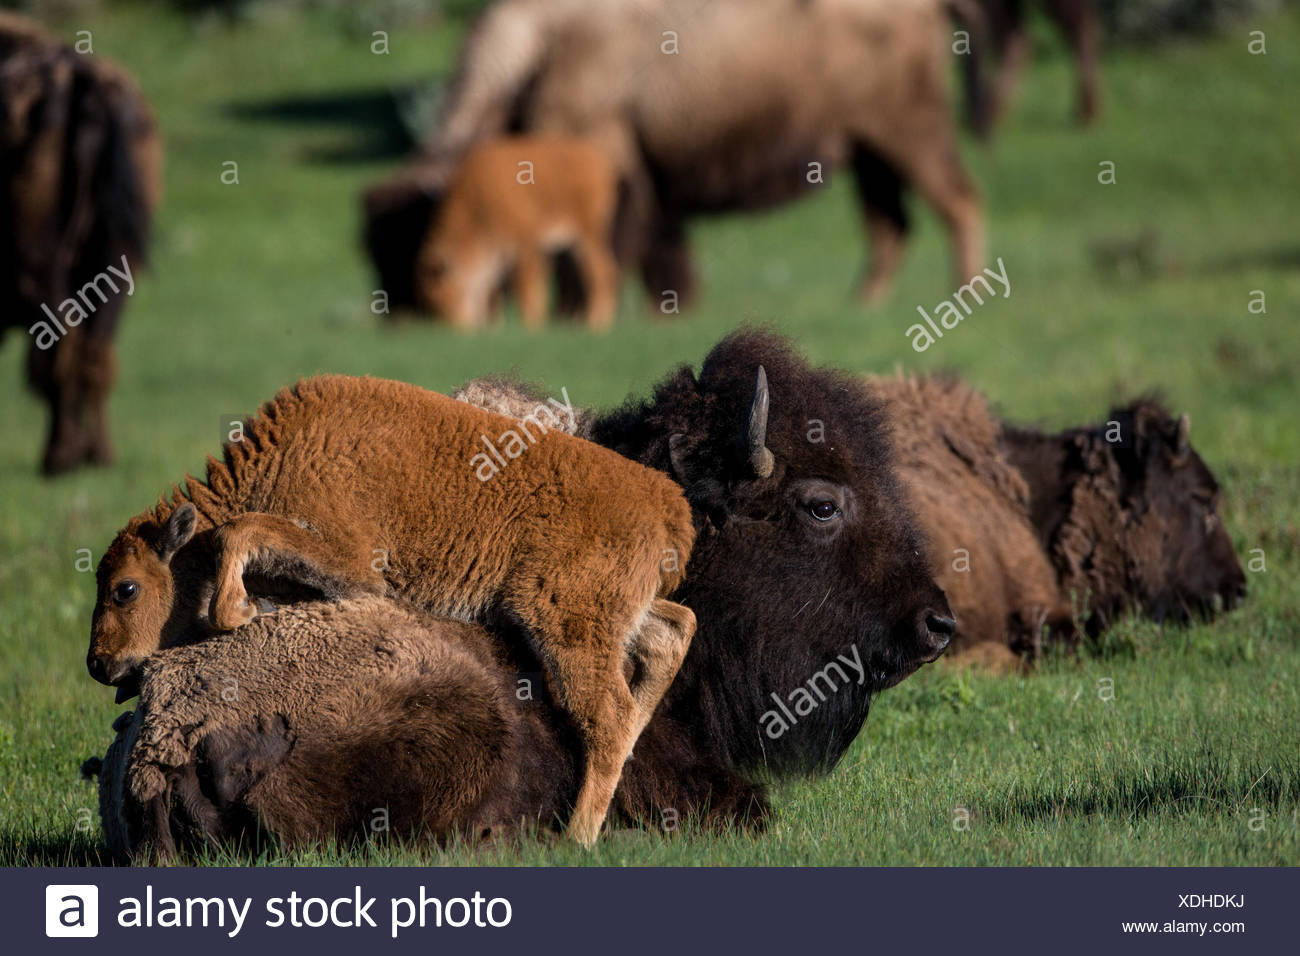 A herd of bison at Mammoth Hot Springs headquarters in Yellowstone National Park. - Stock Image